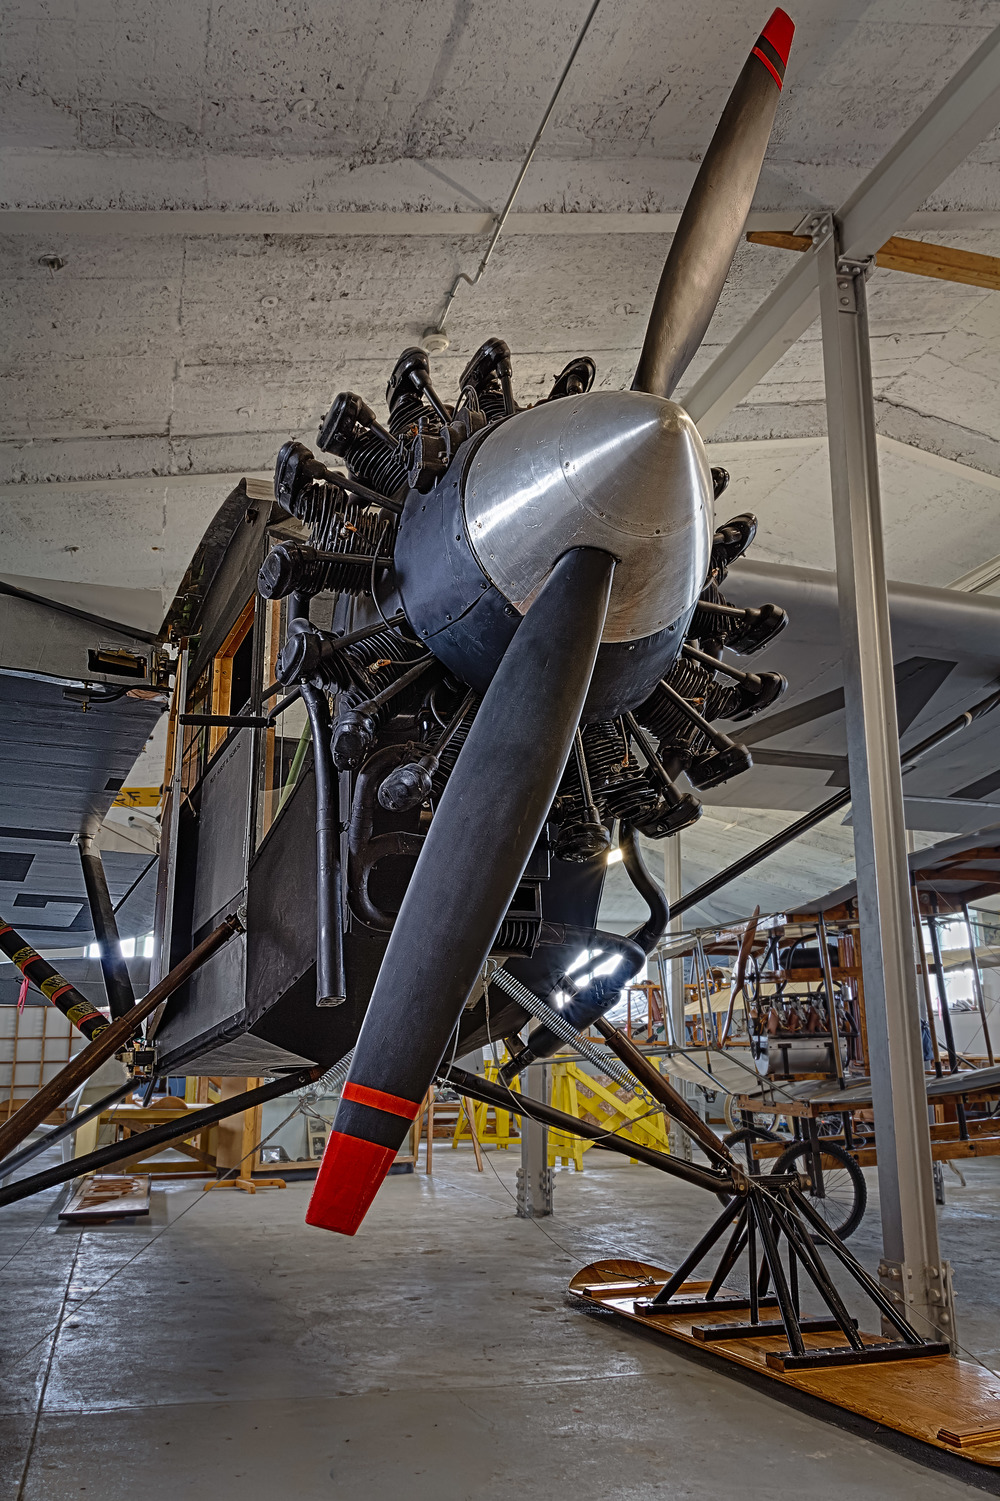 20130803_Canadian Aviation Heritage Center__MG_0657_HDR-Edit.jpg